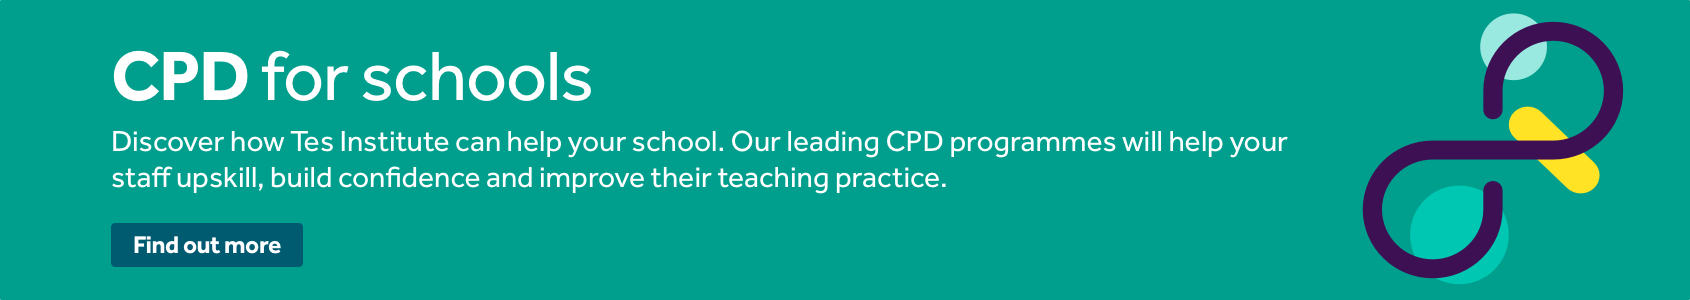 Tes Institue CPD for Schools